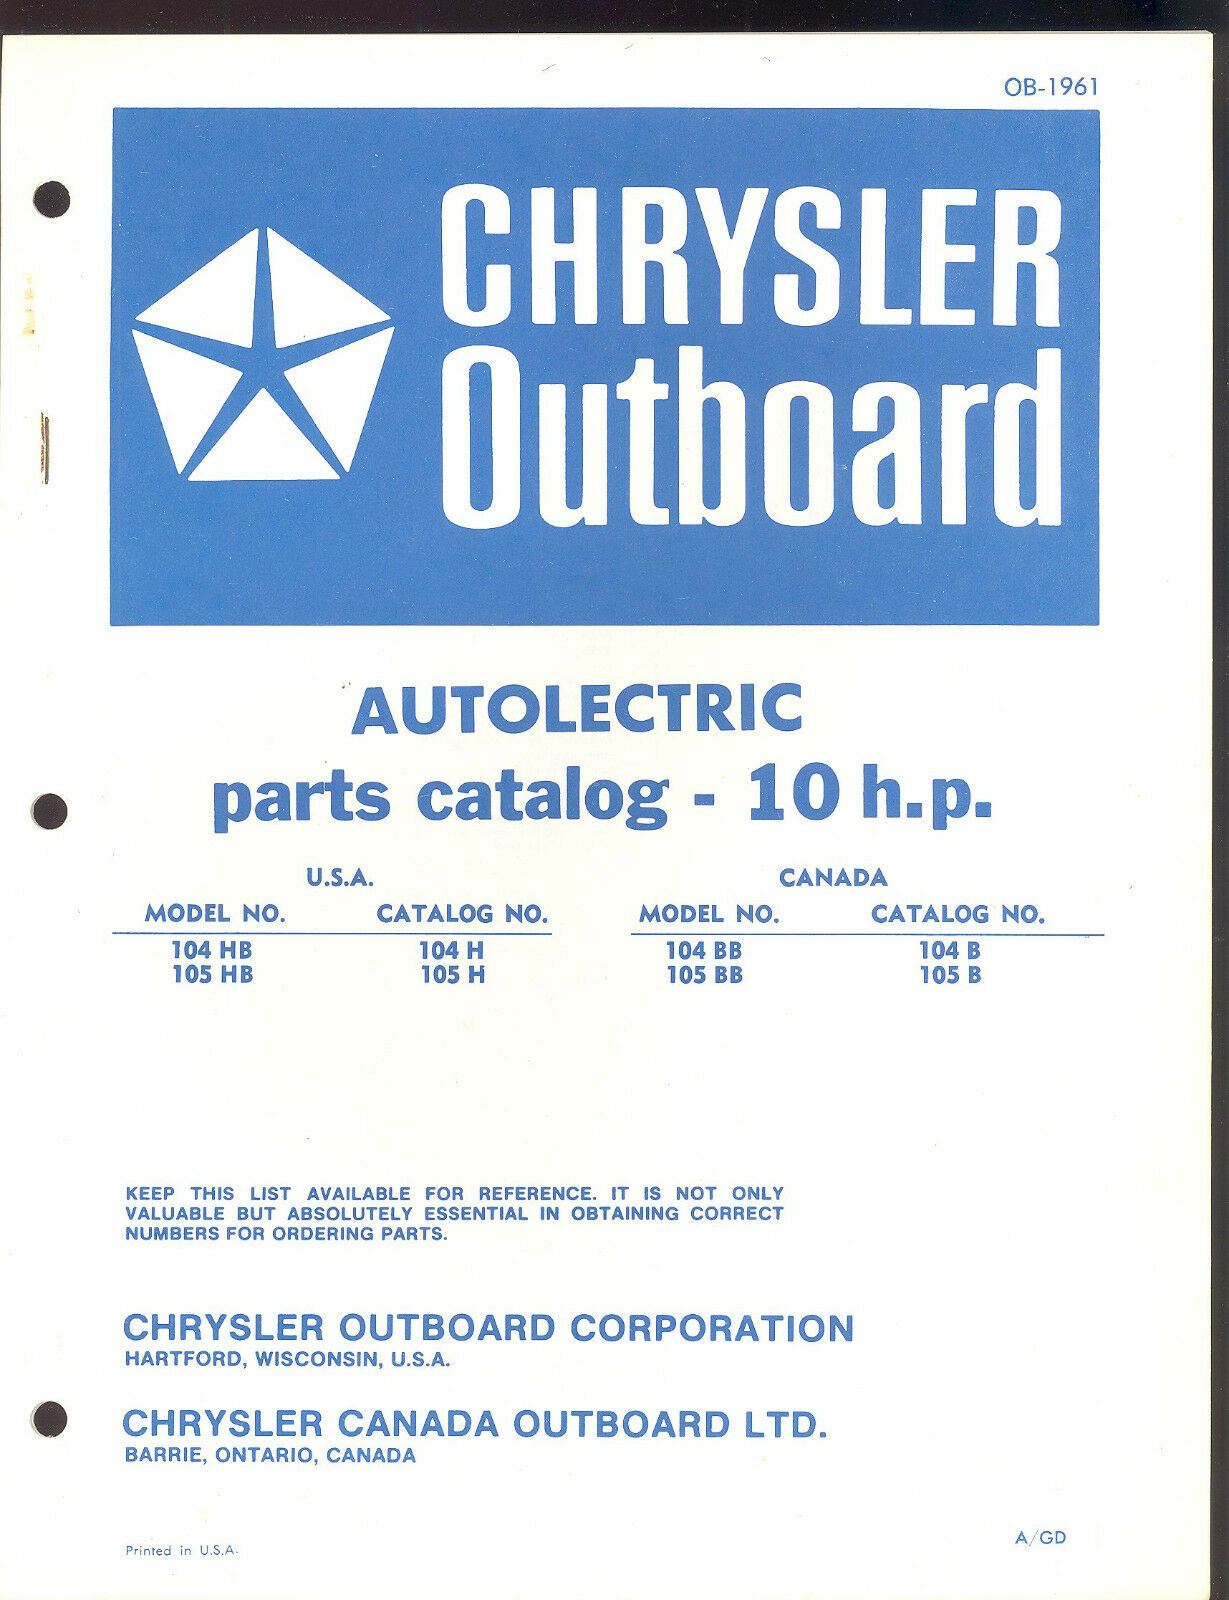 Chrysler 10 Hp Autolectric Outboard Motor Parts Manual / Ob 1961 1 of 2Only  1 available ...